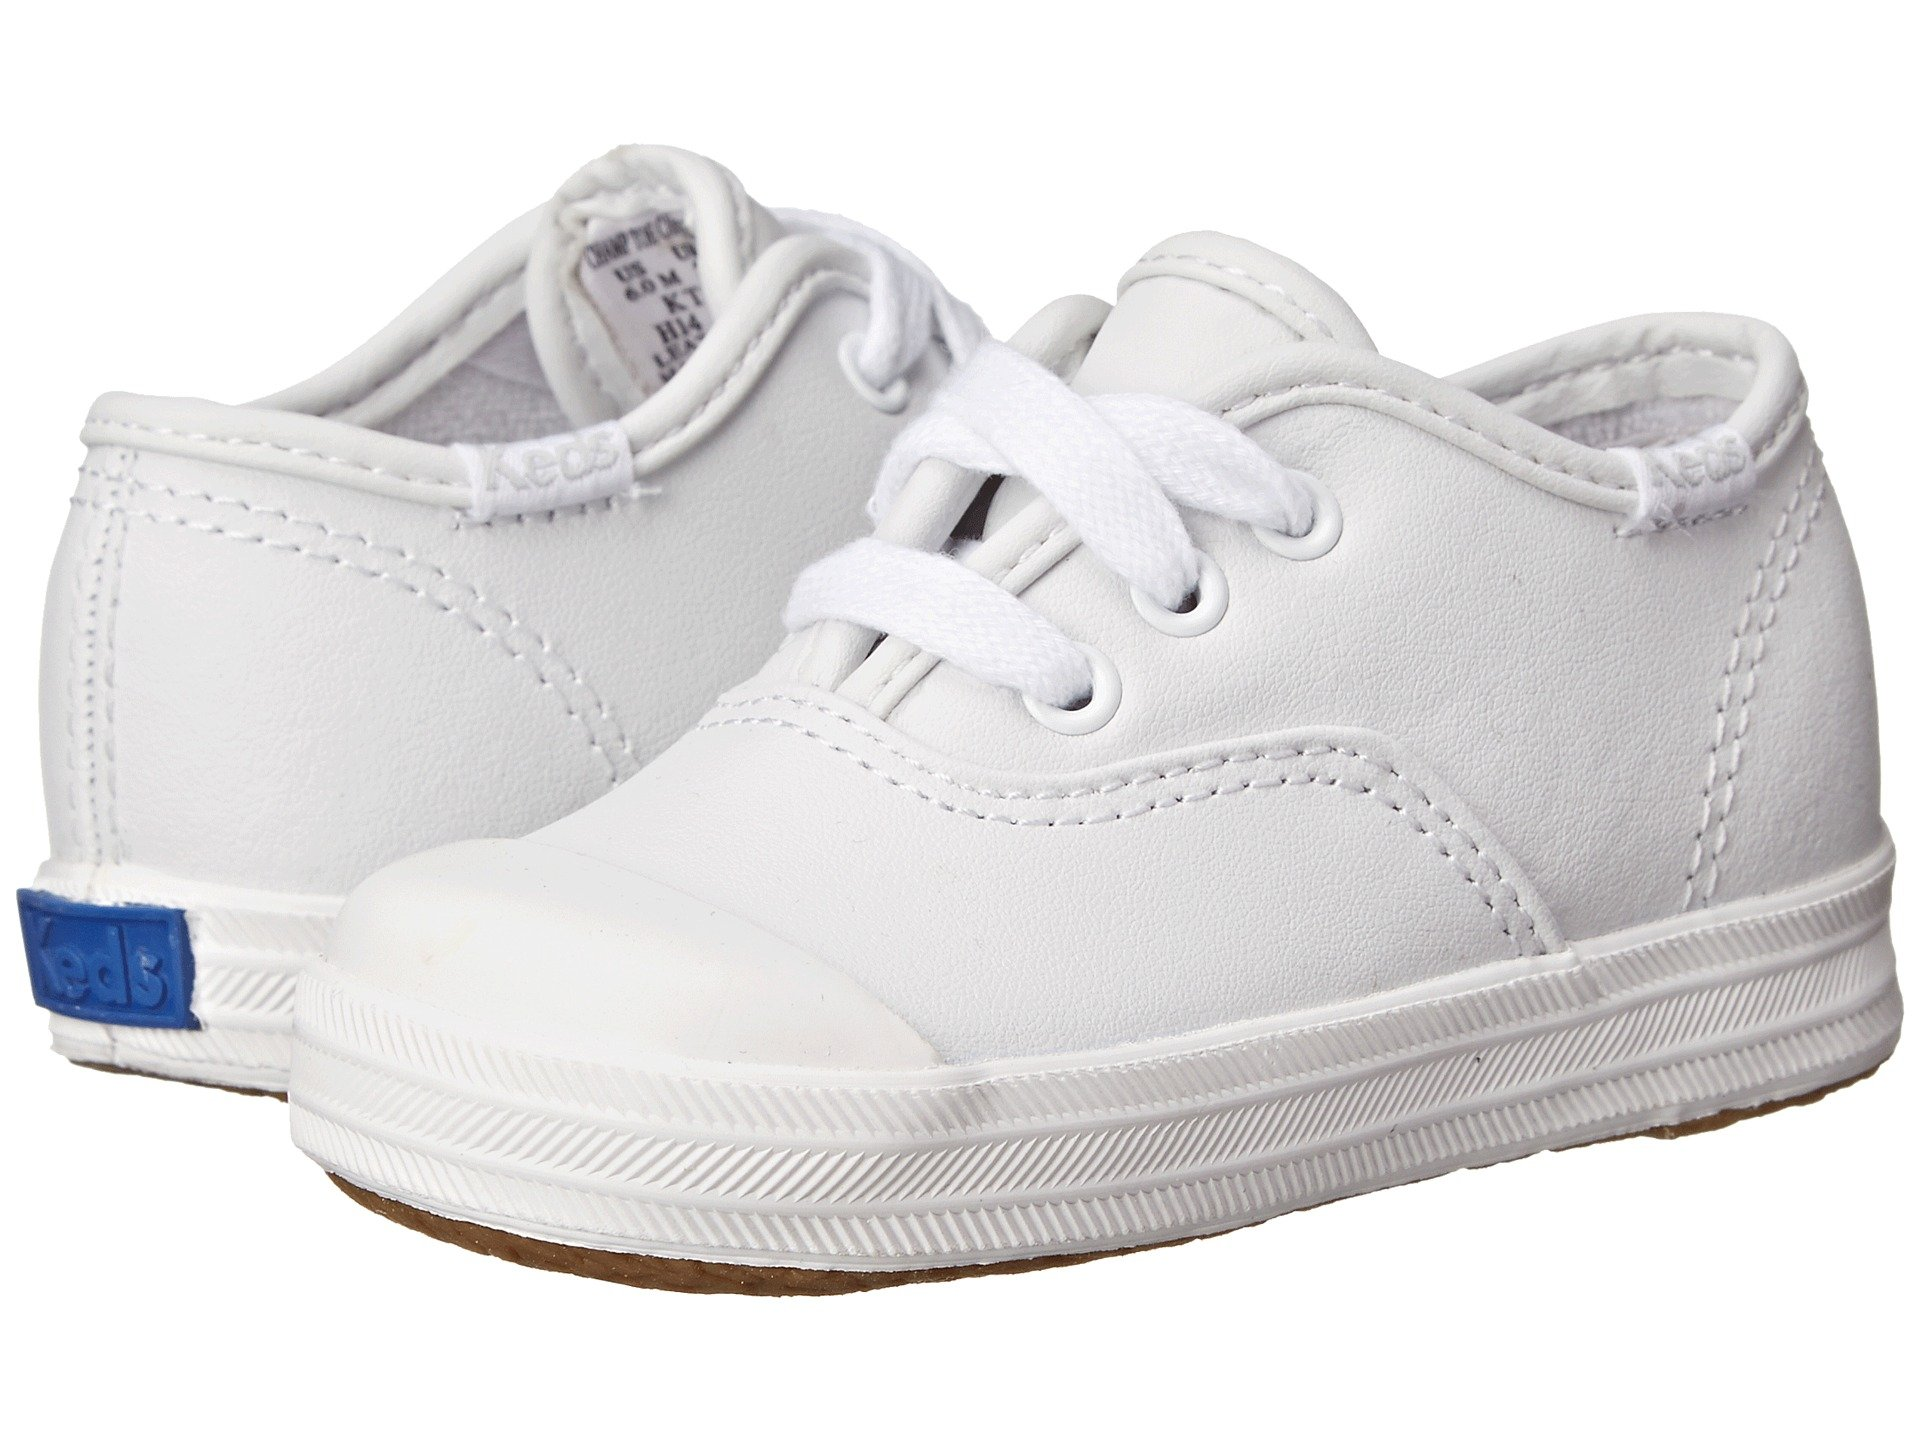 3ba4db4f6d8e11 Girls Keds Kids White Shoes + FREE SHIPPING